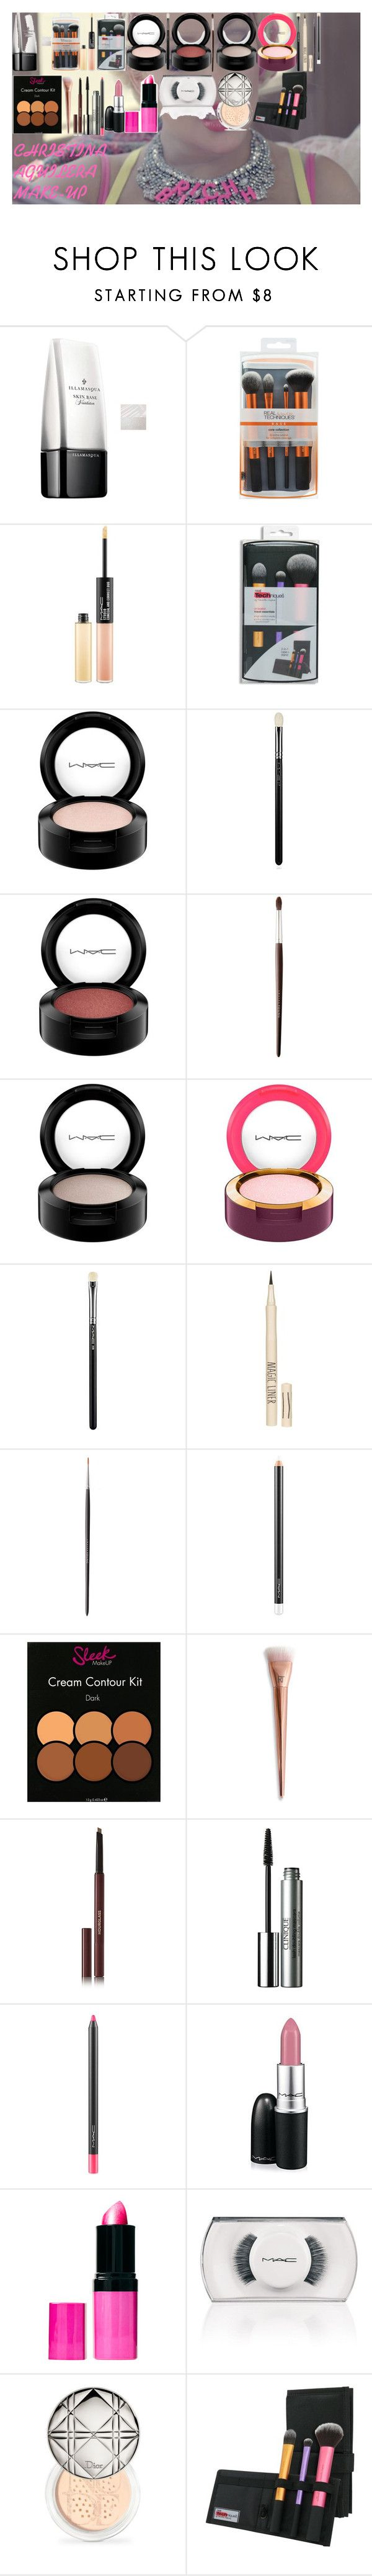 """CHRISTINA AGUILERA MAKE-UP"" by oroartye-1 on Polyvore featuring beauty, Illamasqua, MAC Cosmetics, Louise Young Cosmetics, Topshop, Hourglass Cosmetics, Clinique, Barry M and Christian Dior"